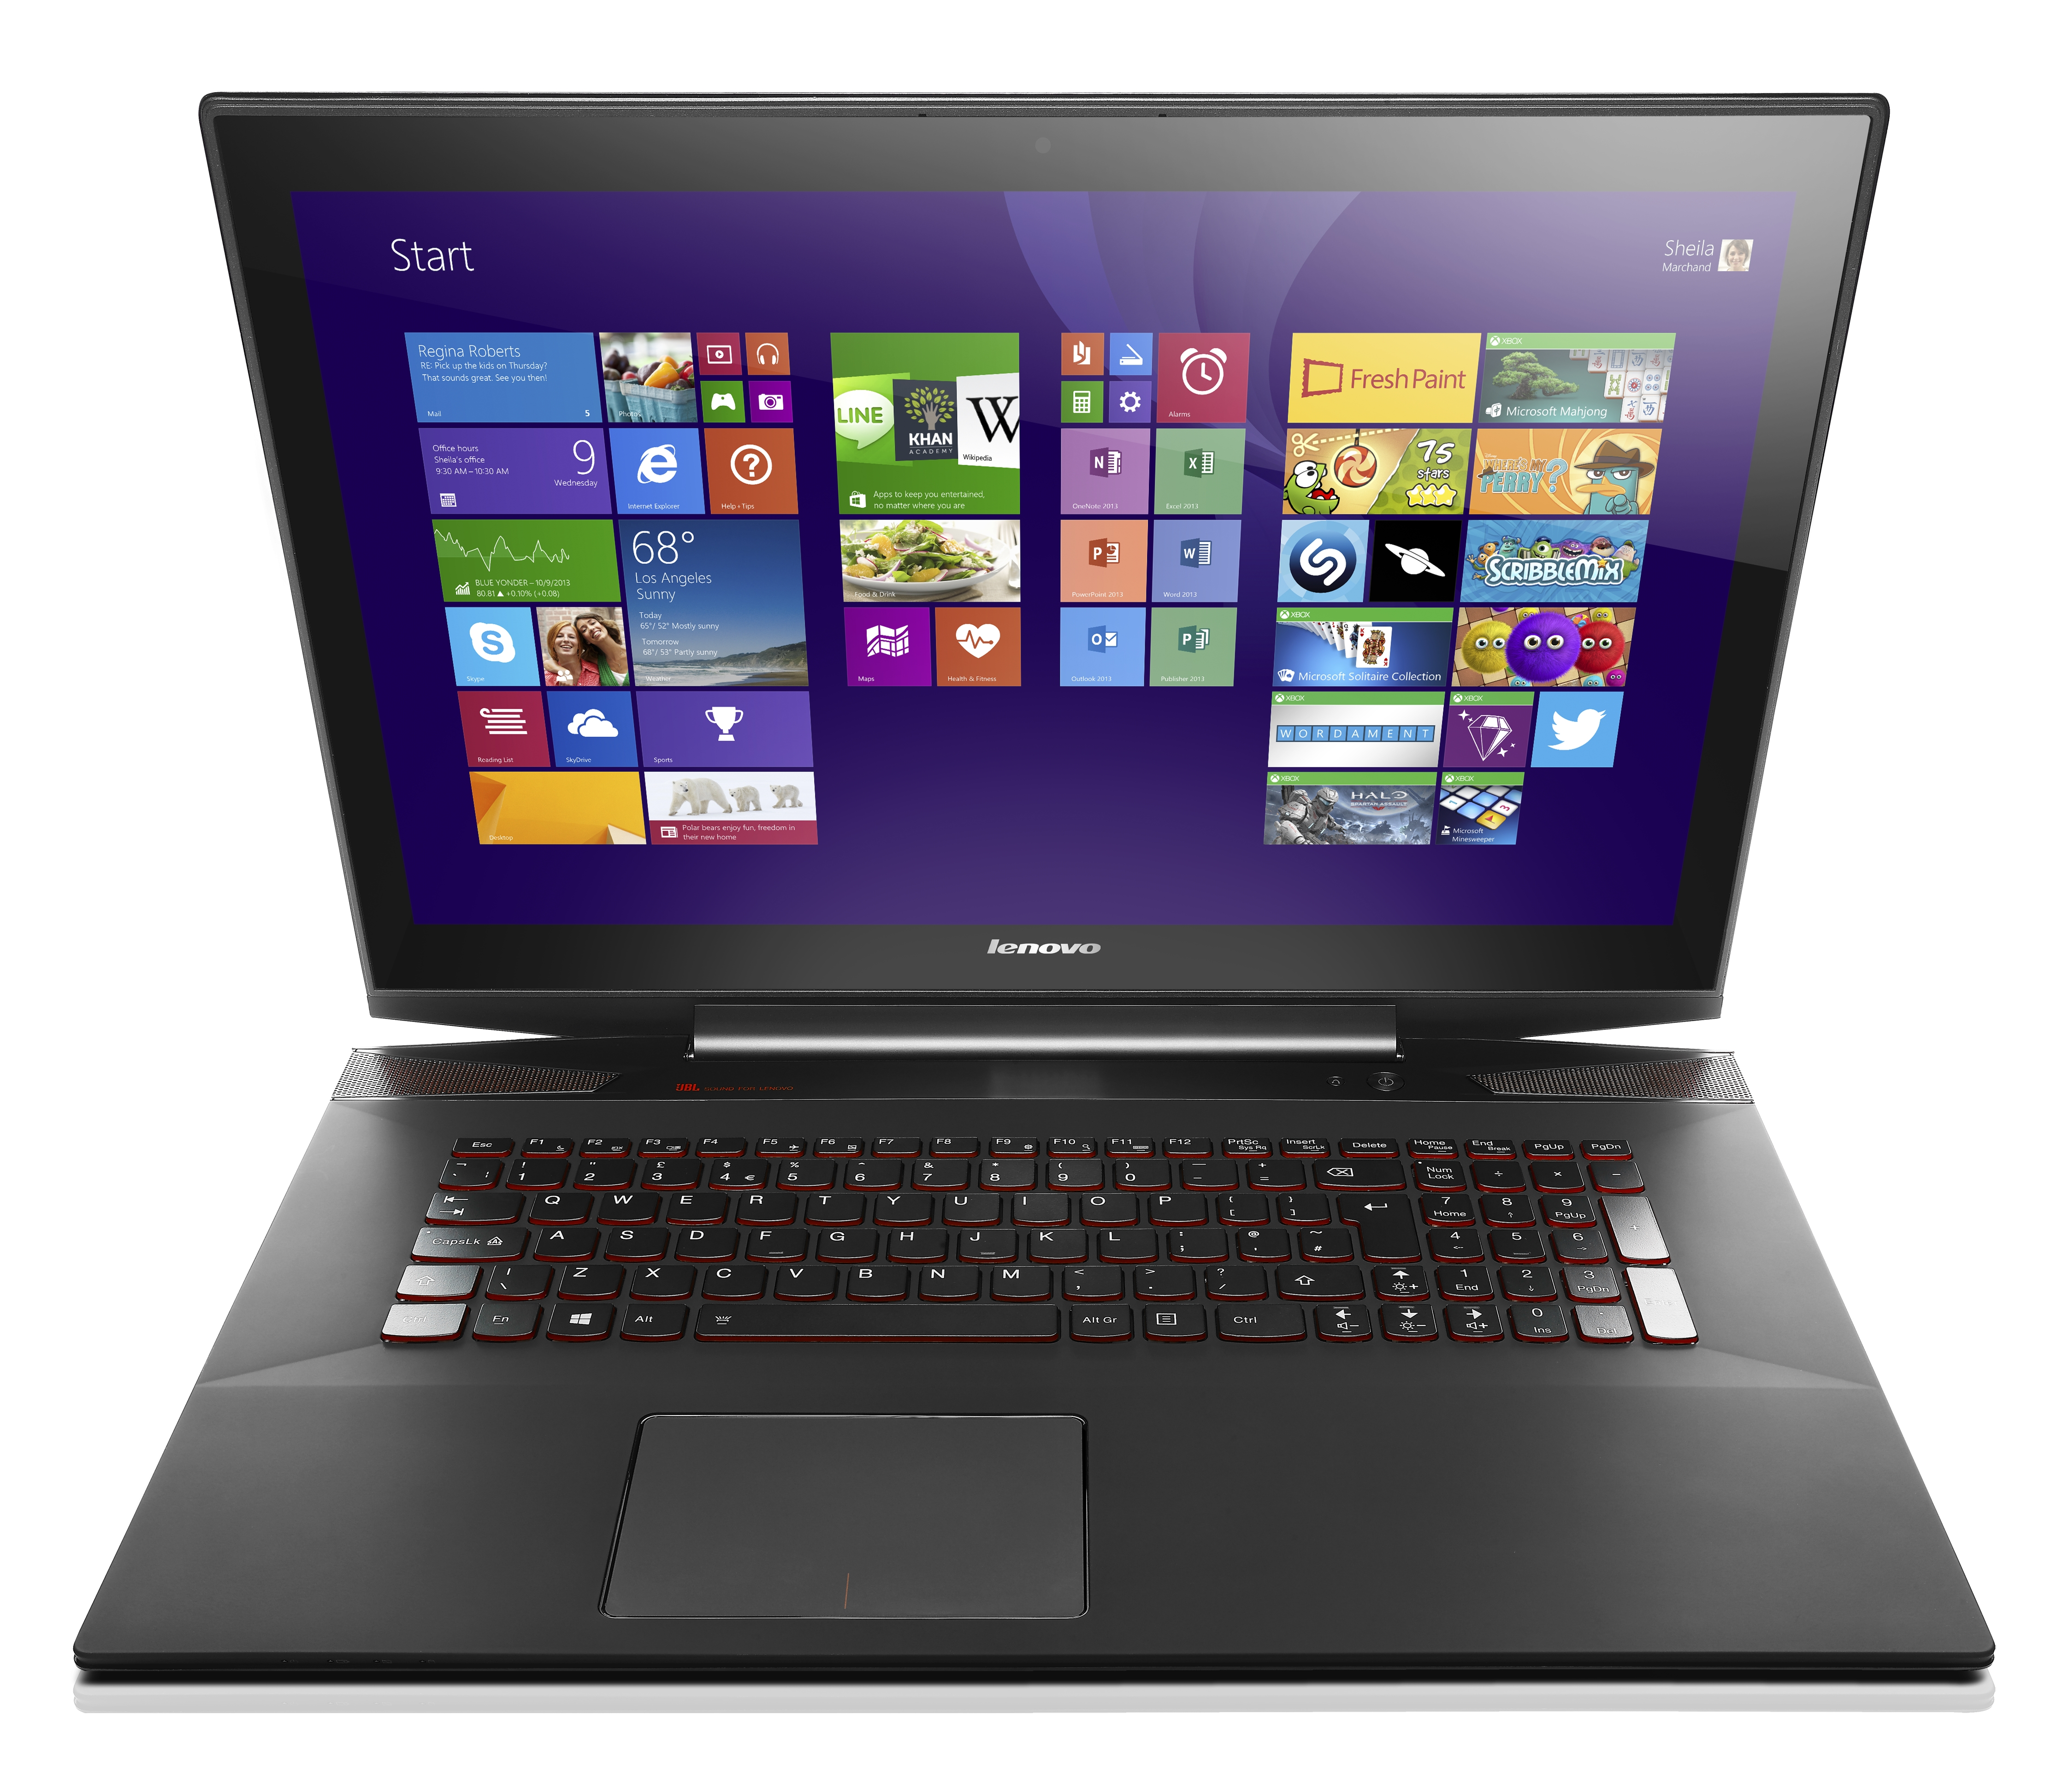 Lenovo Y70 Notebook Review - NotebookCheck.net Reviews 19005170f0